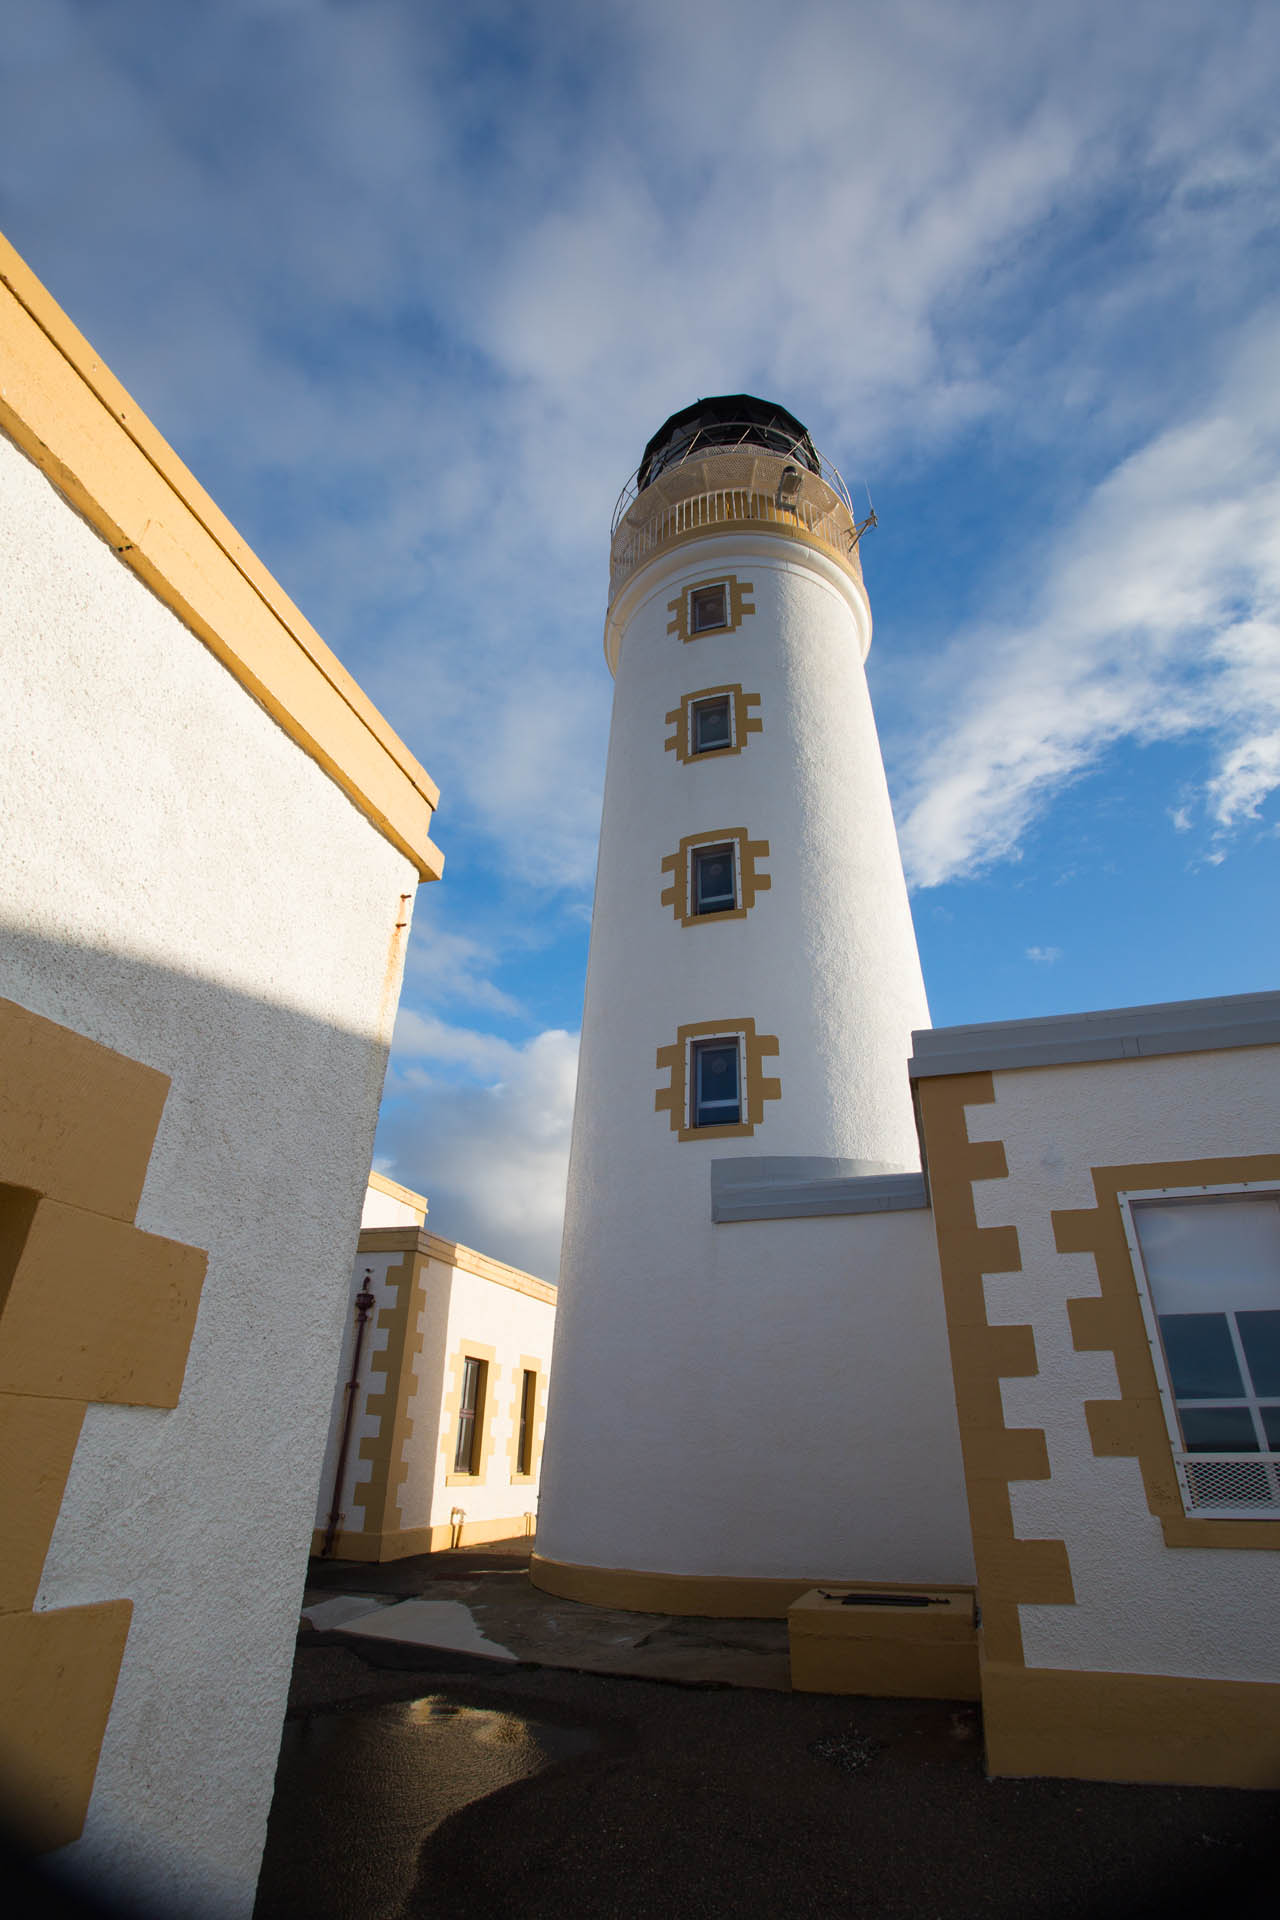 Gallery Rua Reidh Lighthouse